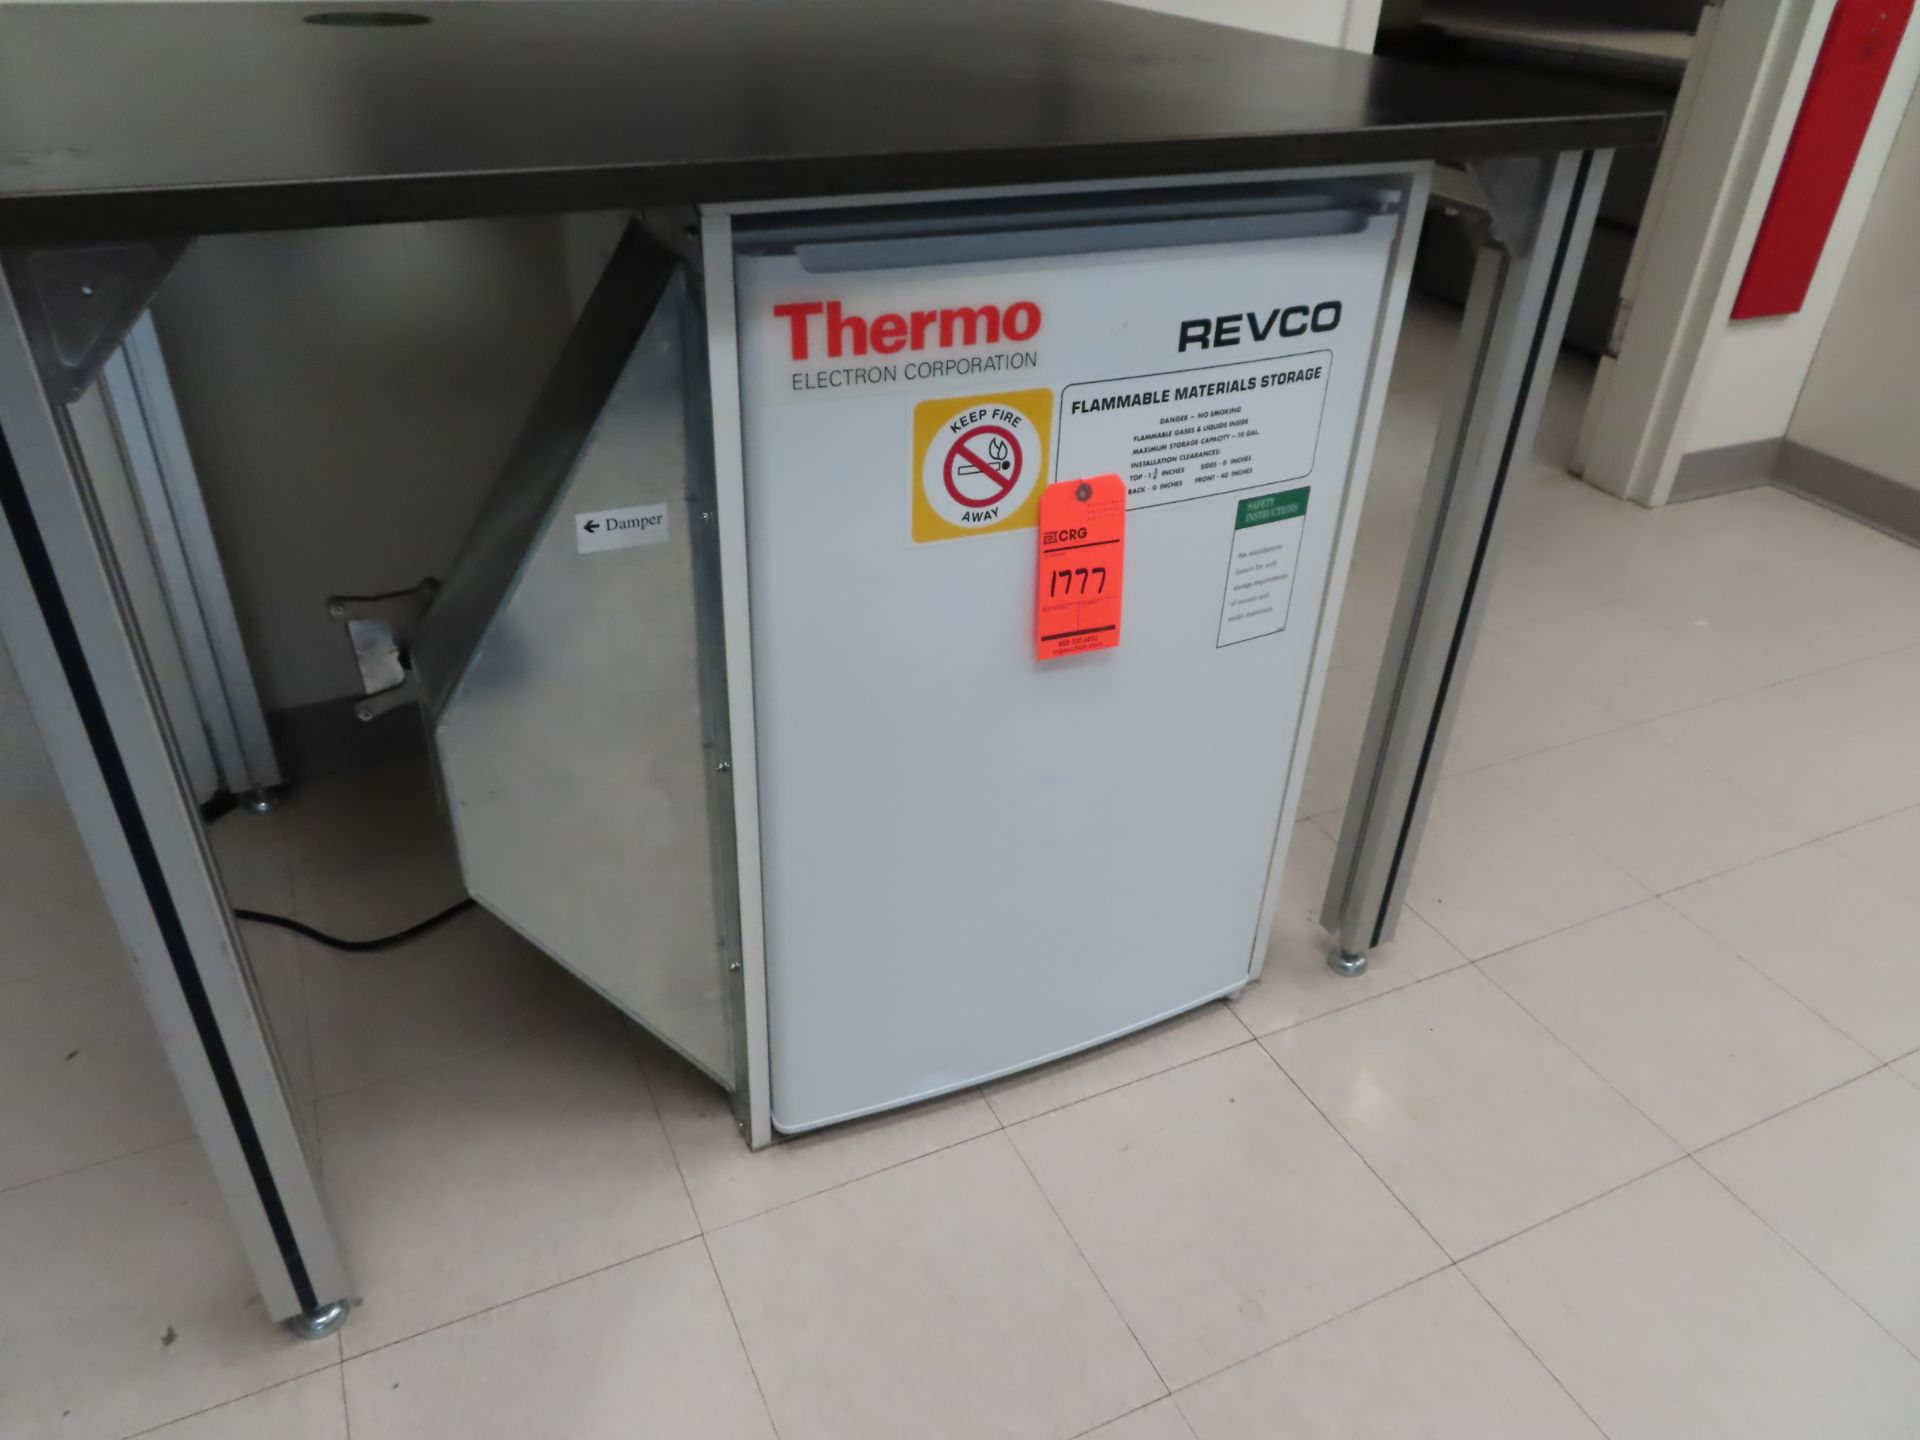 Lot 1777 - Revco flammable materials storage refrigerator, located in B wing, 4th floor, room 447A